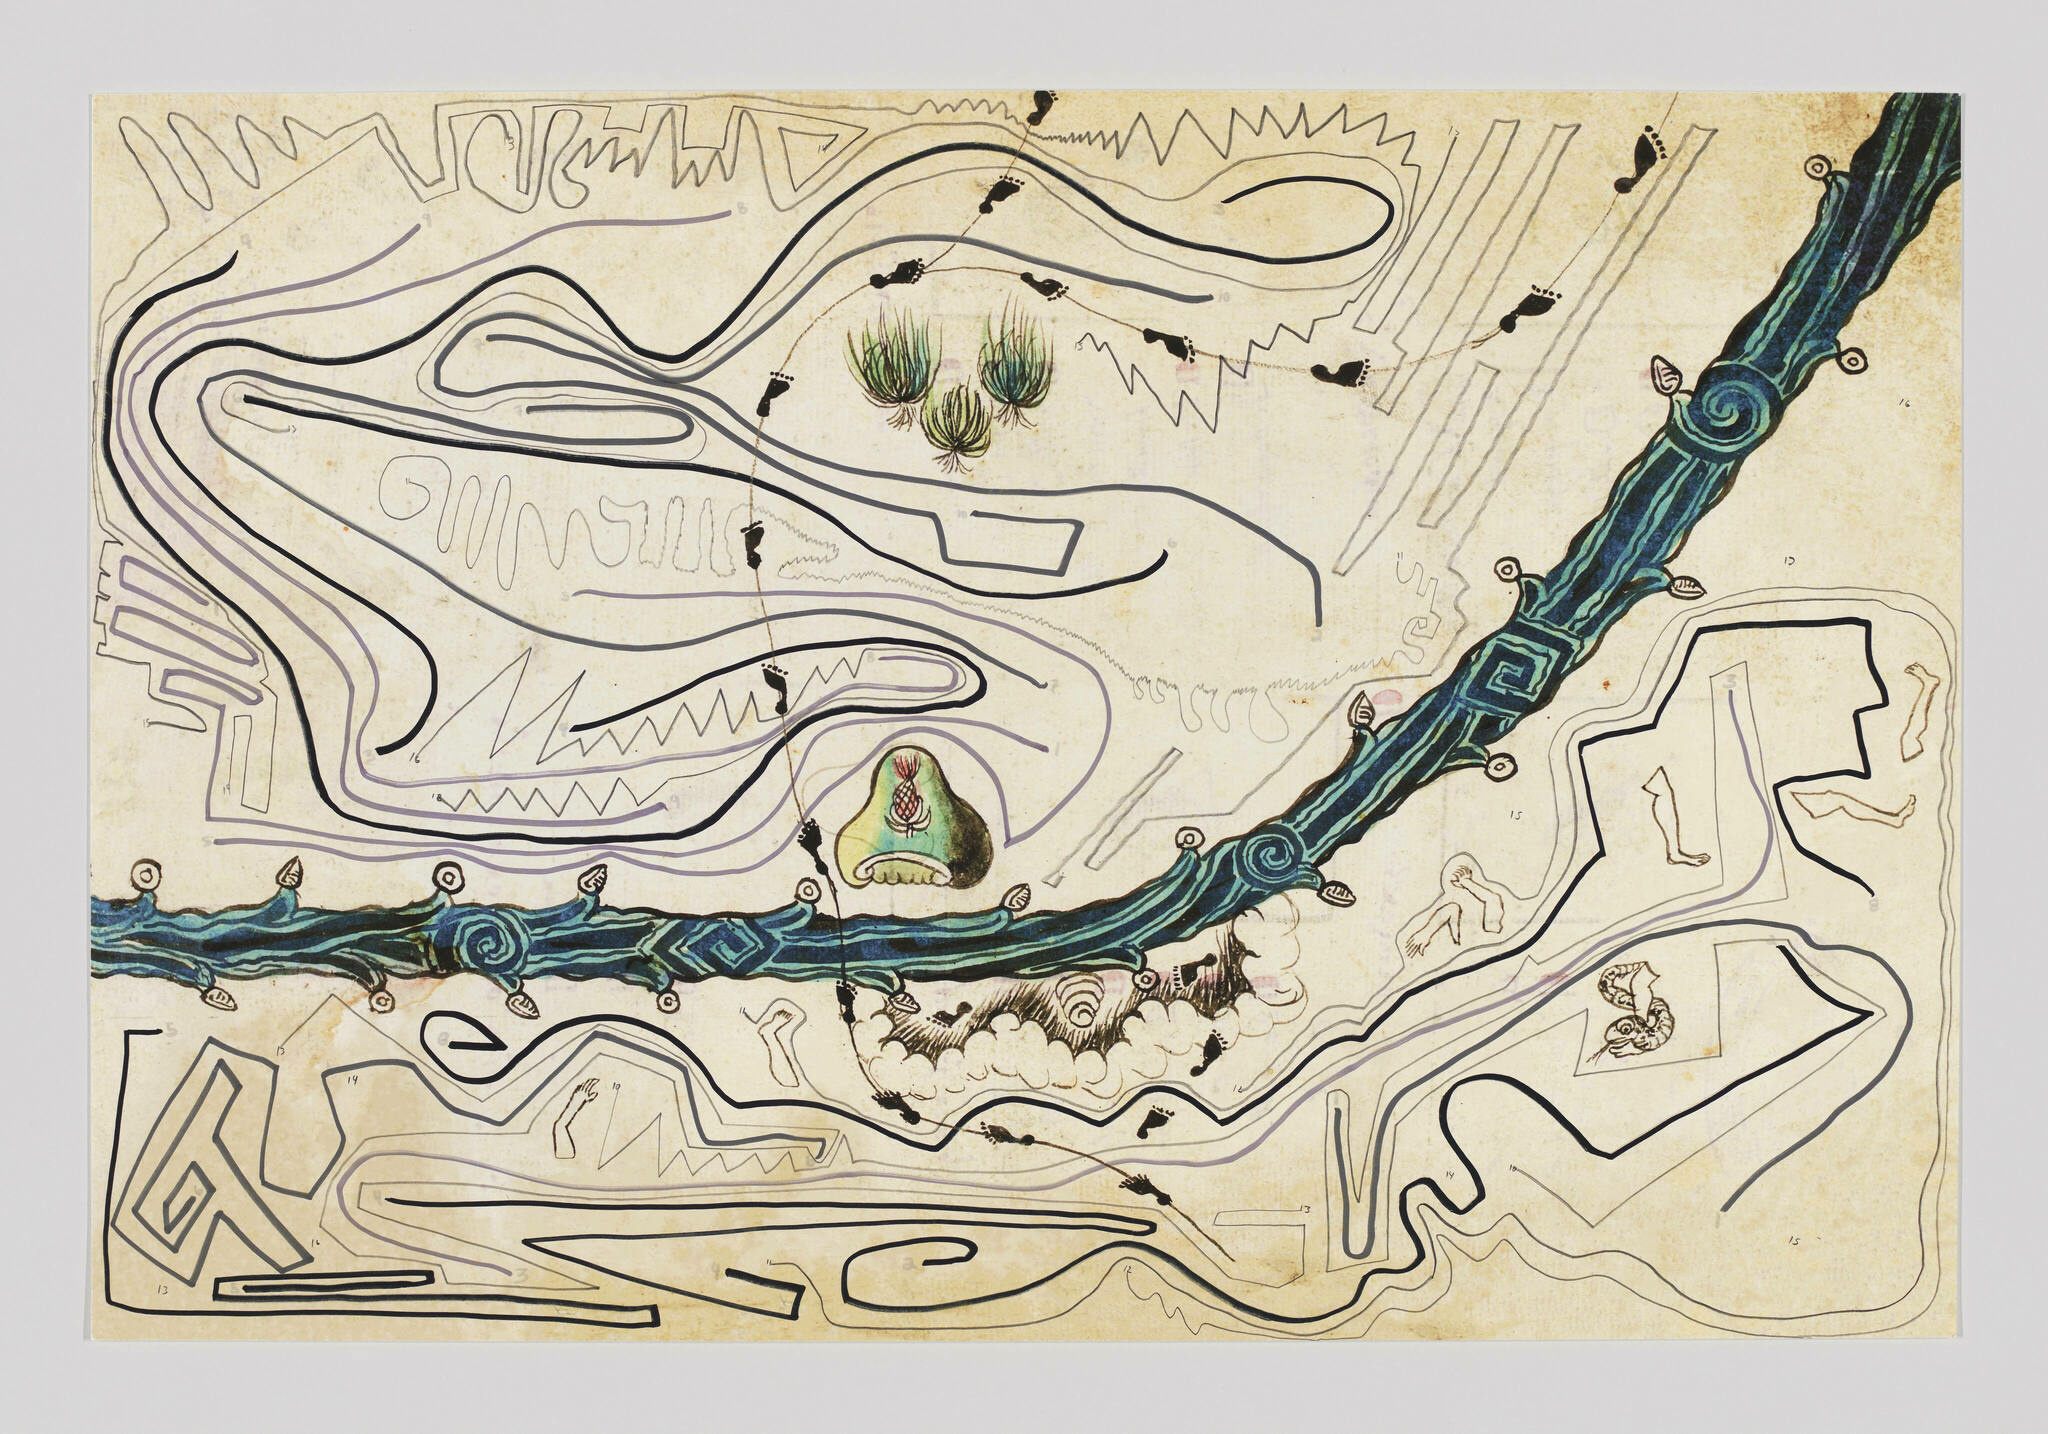 Fluid organic lines cover the entirety of this drawing. A sweeping, thicker blue line representing a river cuts across the work.